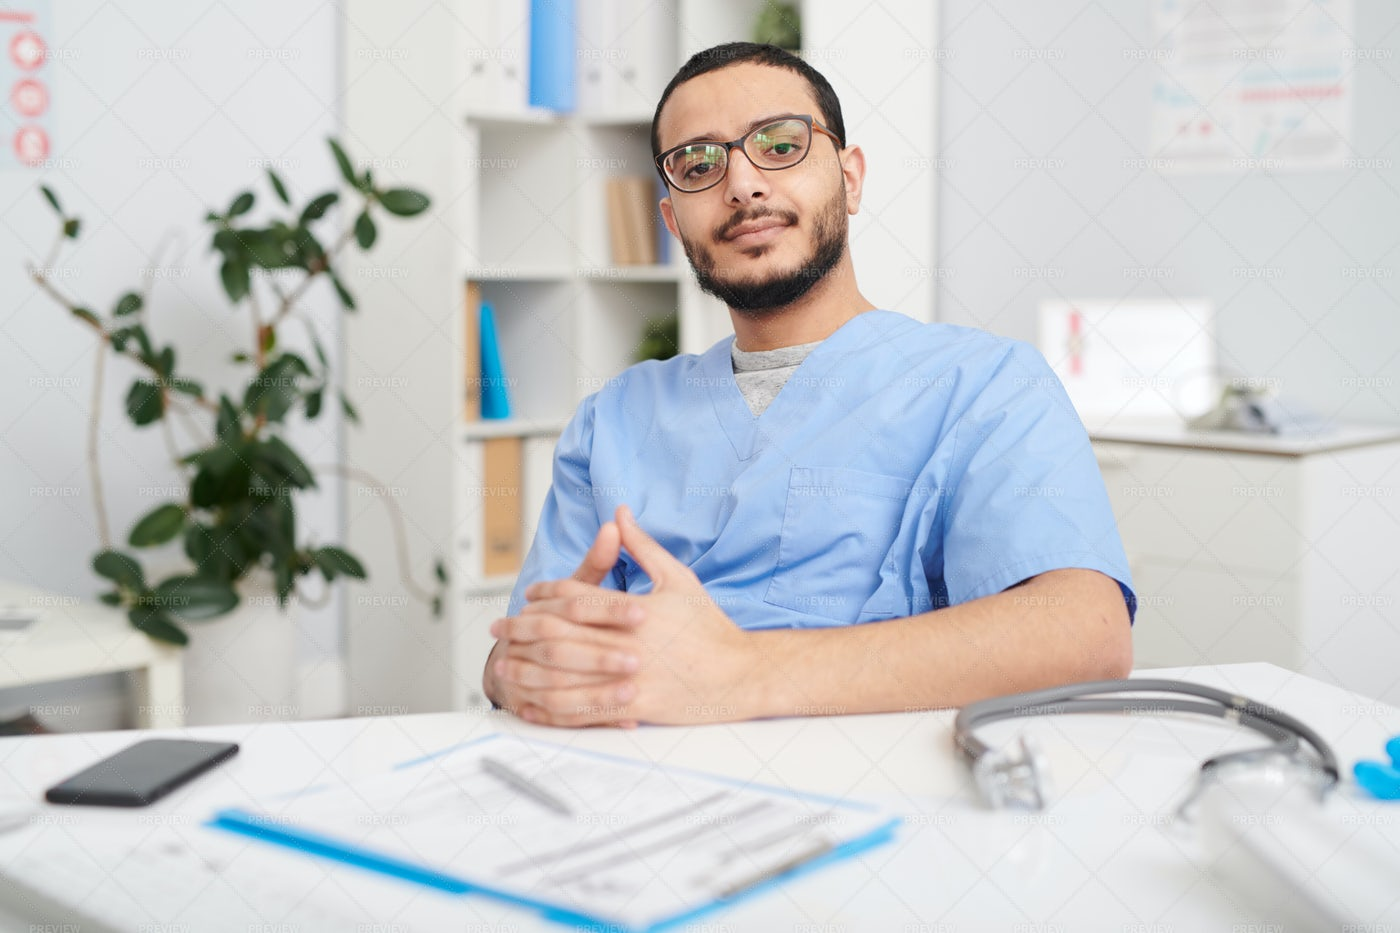 Confident Middle-Eastern Doctor...: Stock Photos